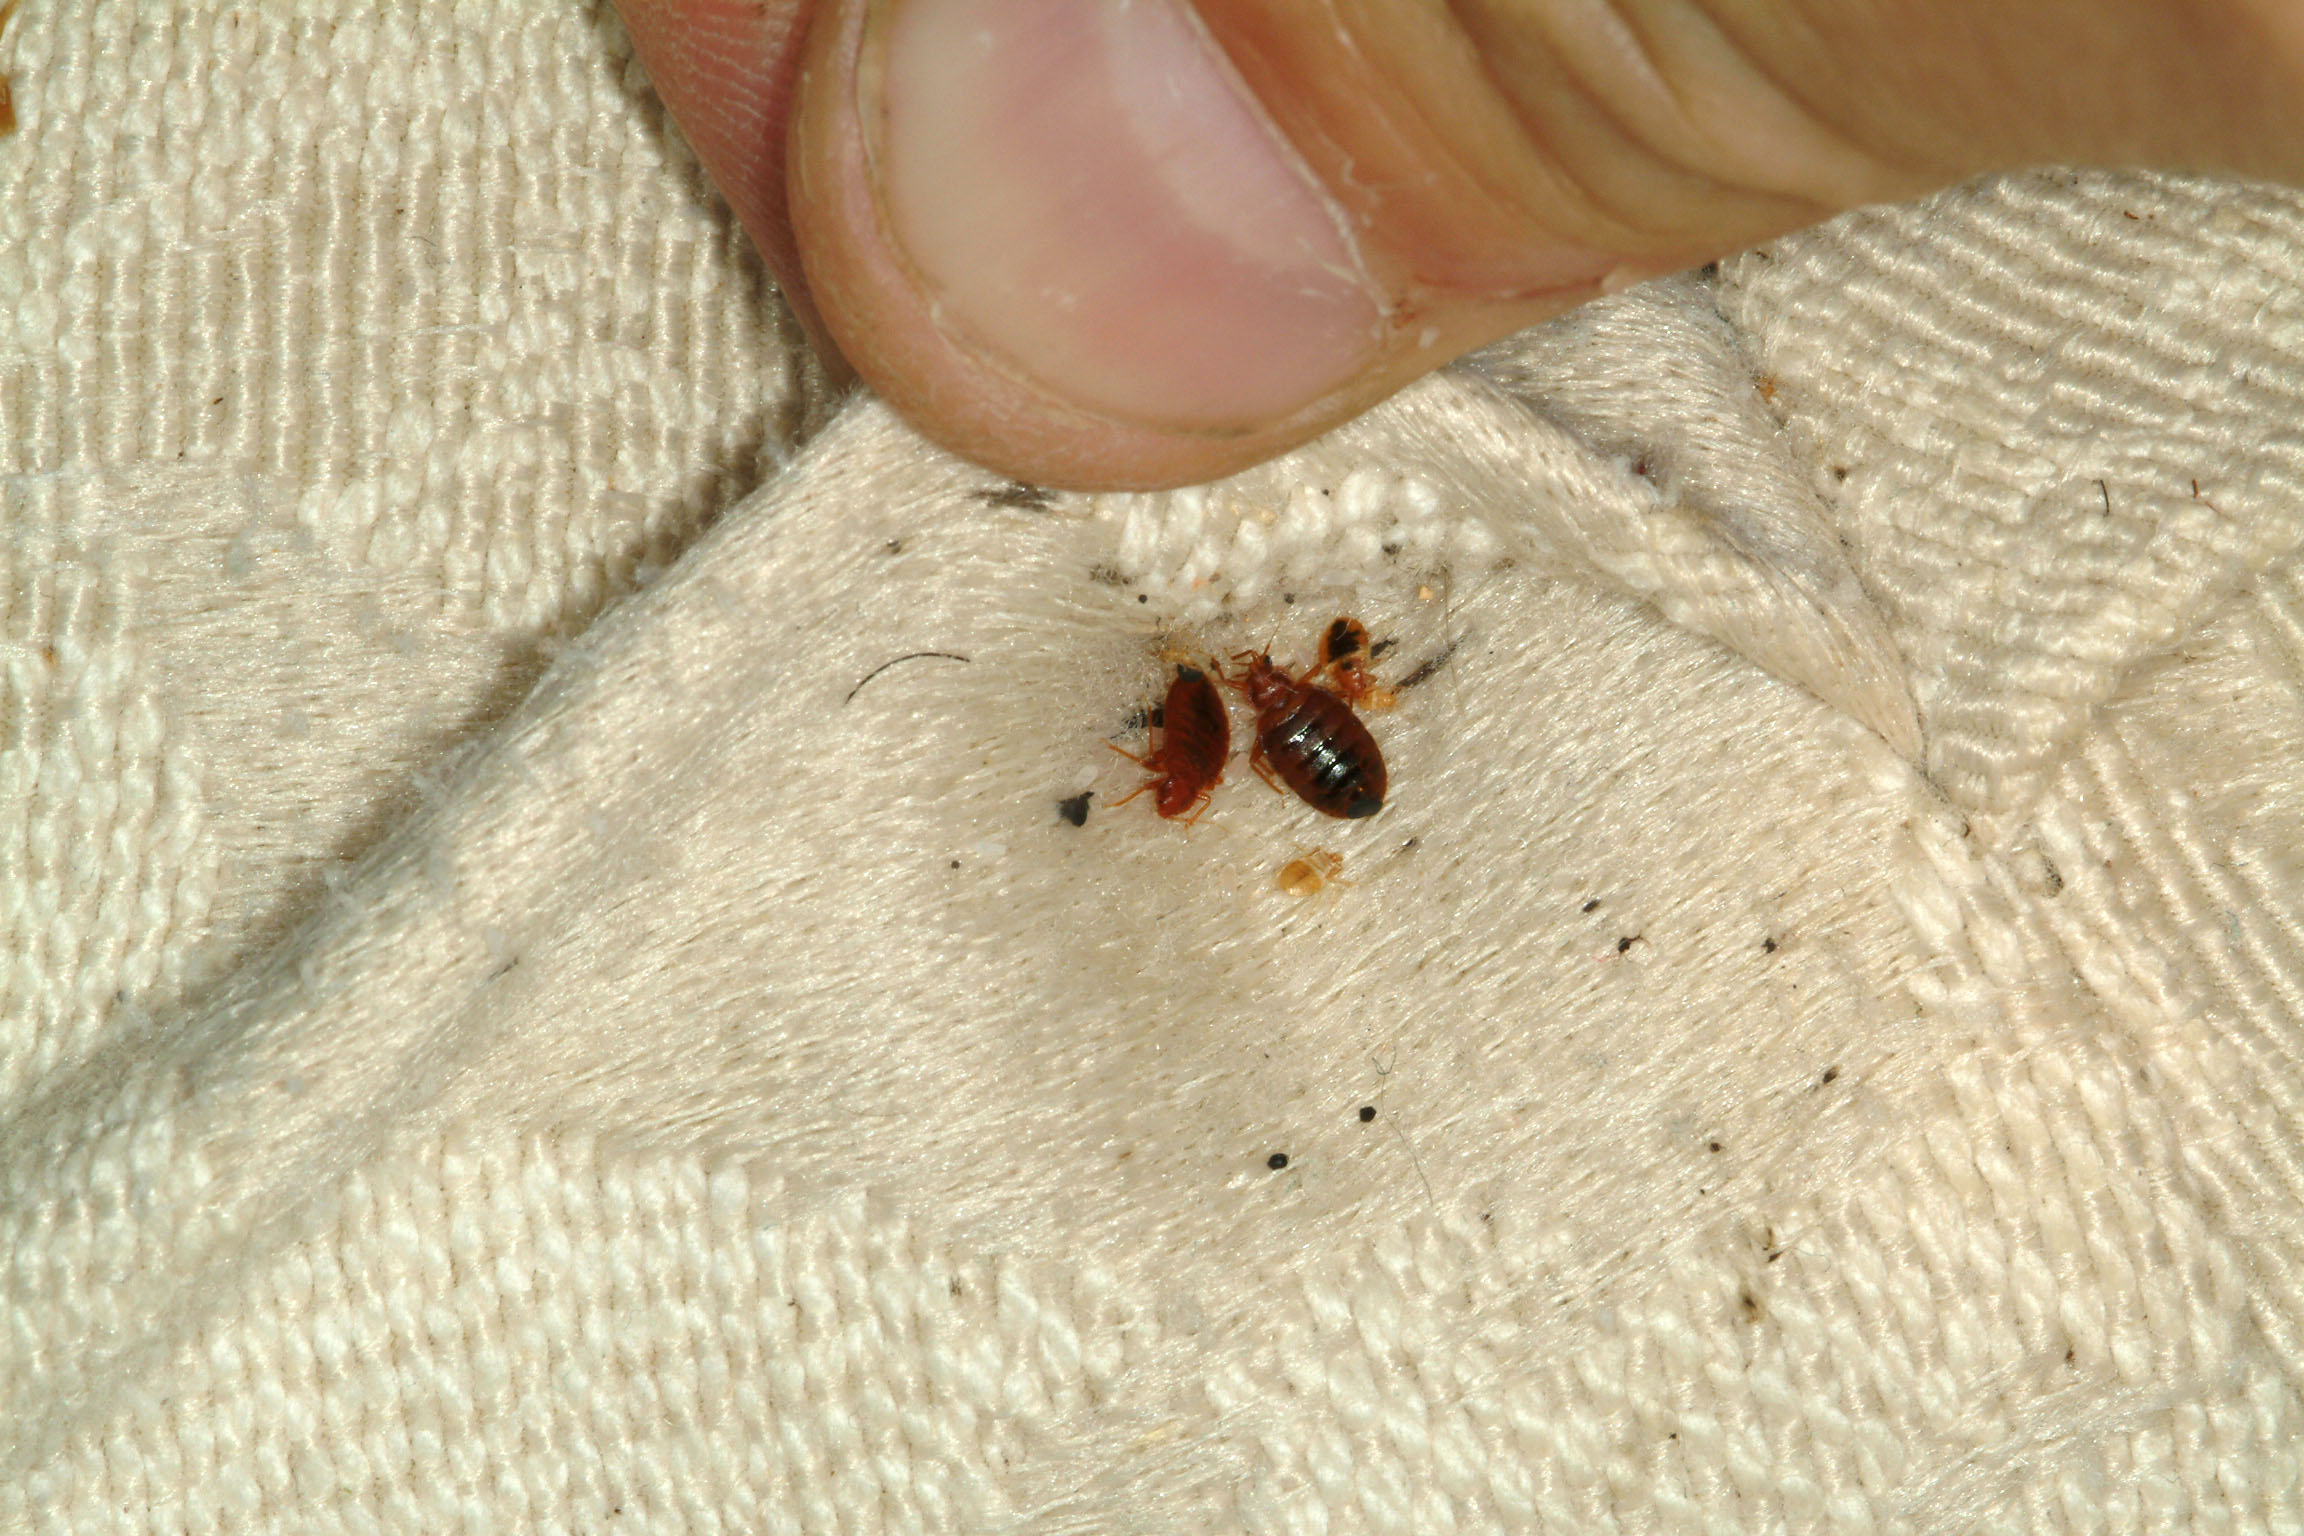 three n j state building being monitored for bed bugs